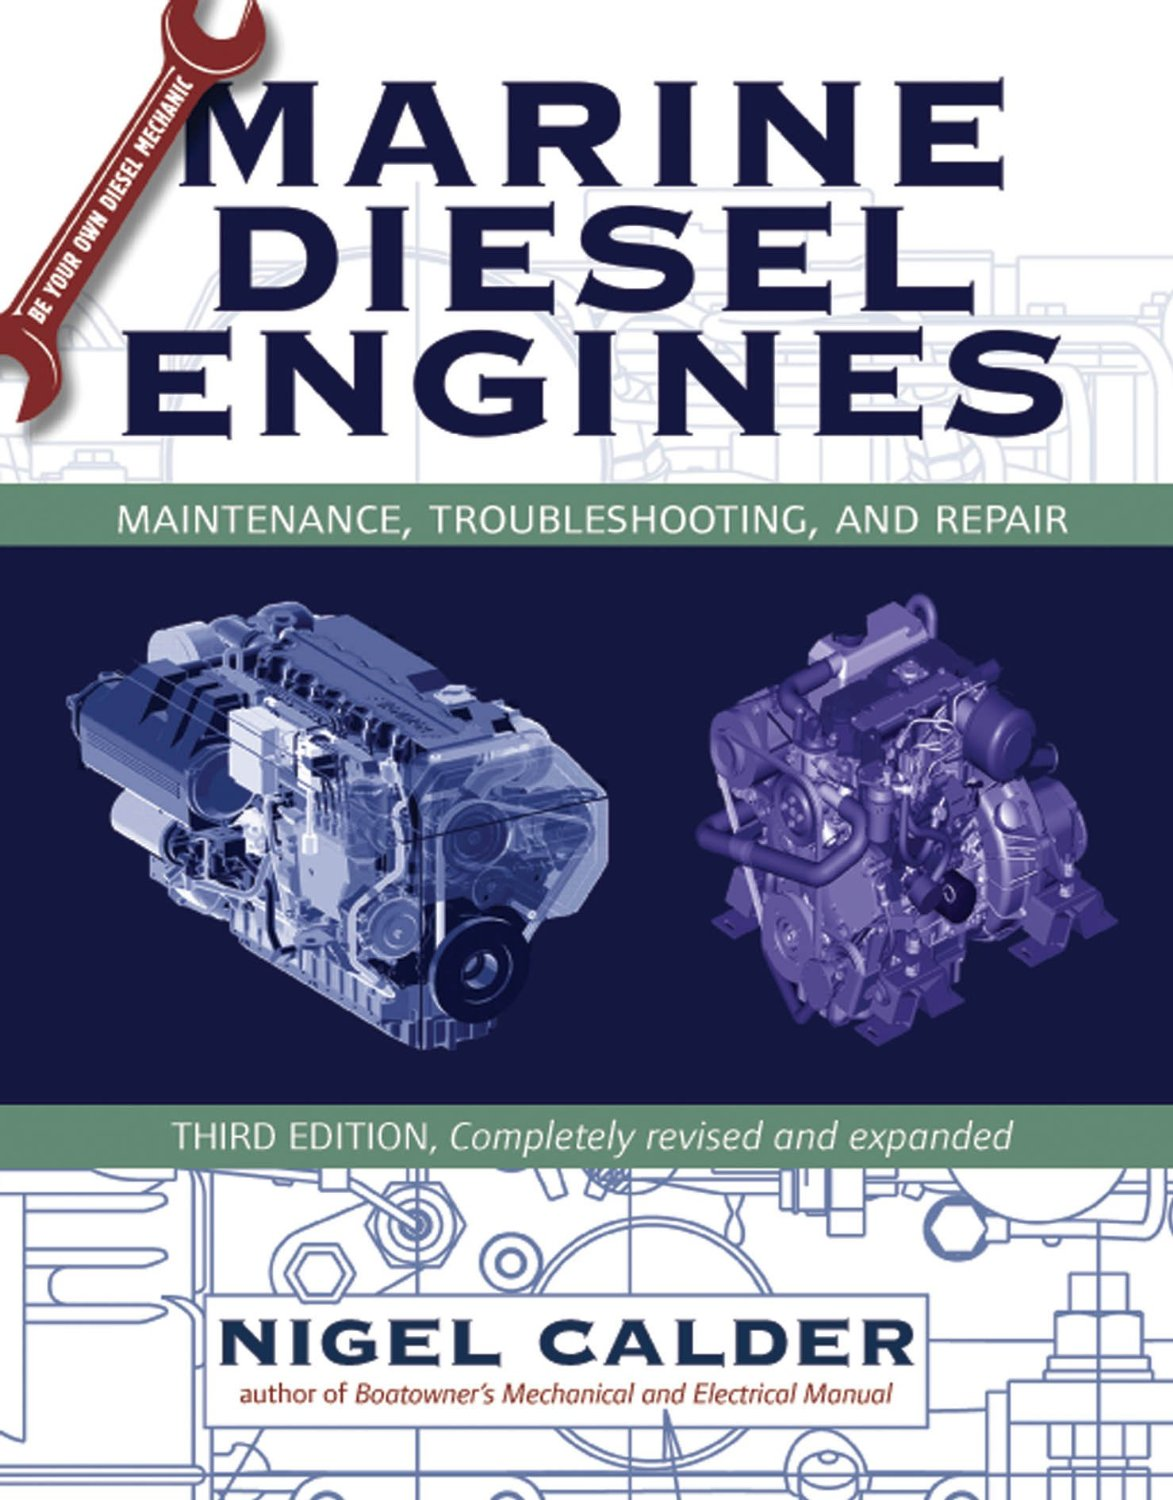 here in this goldmine of a book is everything the reader needs to keep their diesel engine running cleanly and efficiently nigel calder is the worlds